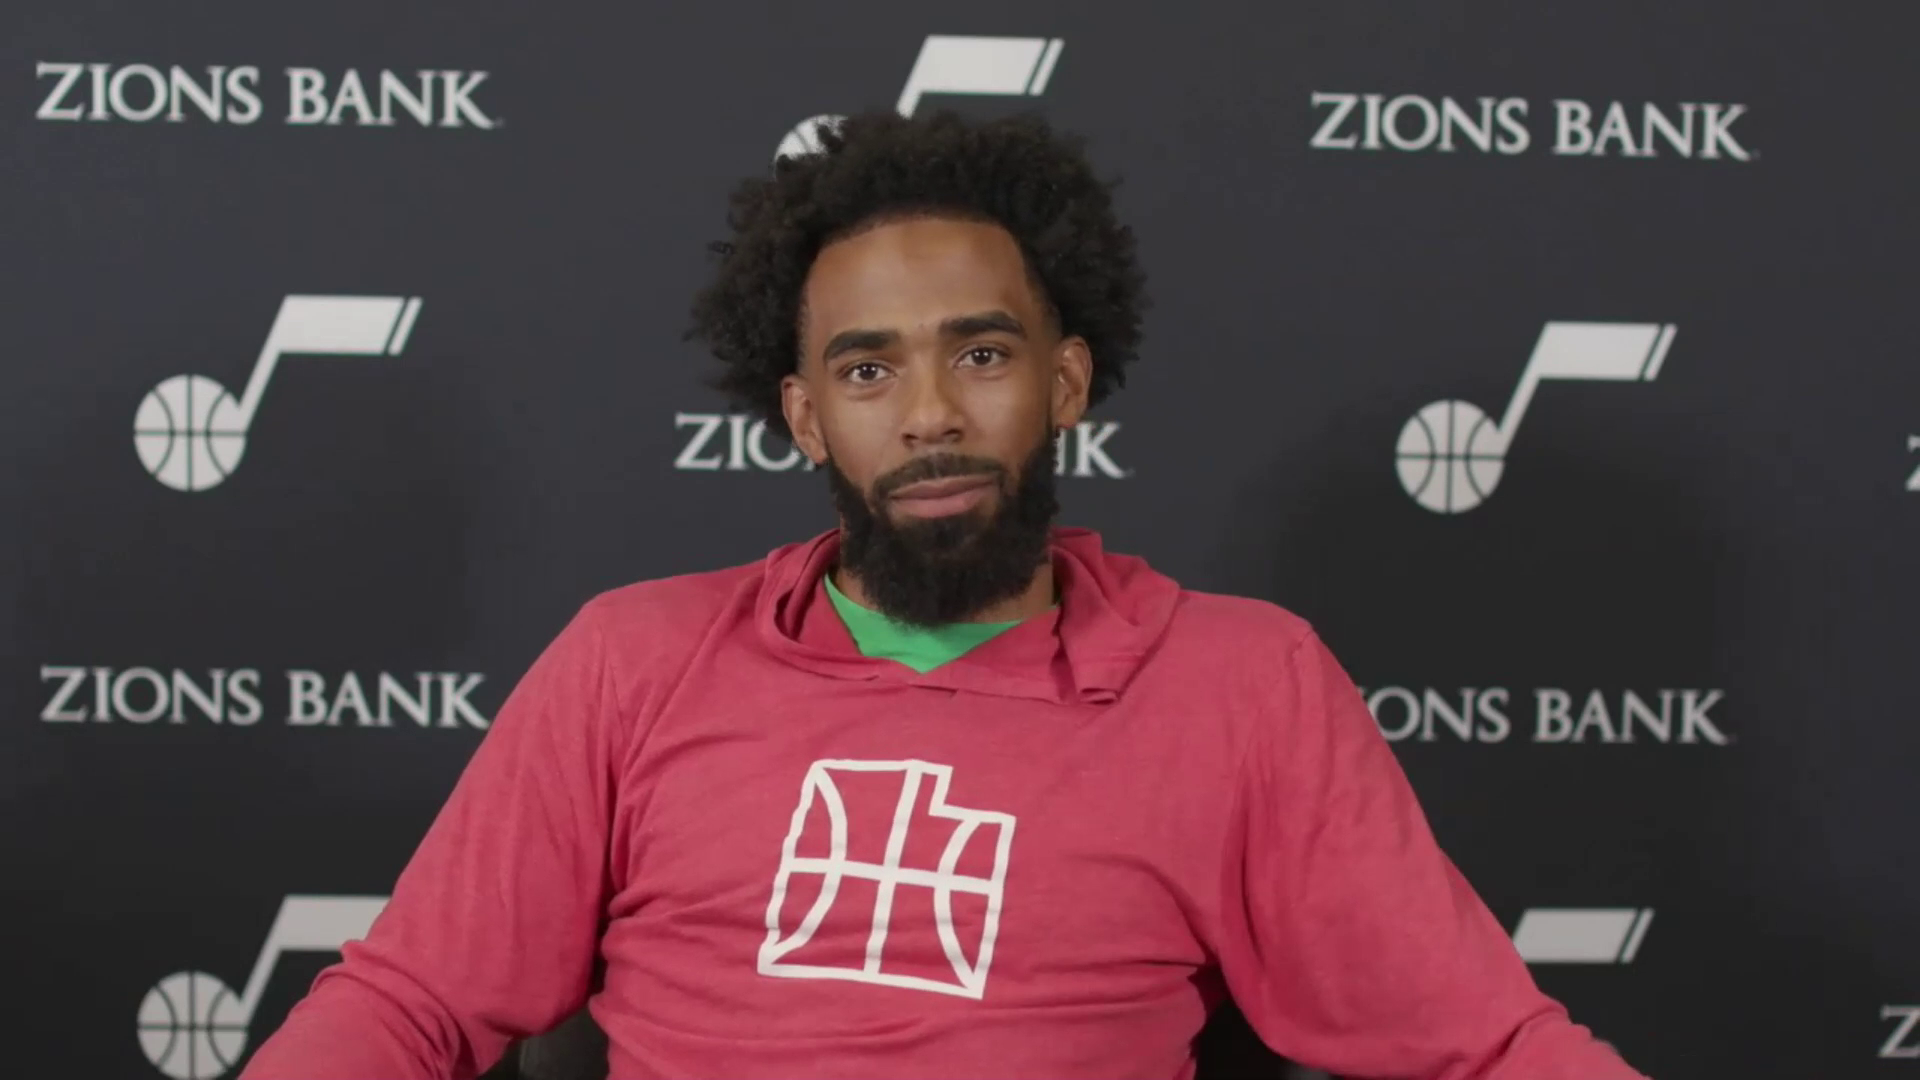 Shootaround 6.16—Mike Conley gives an update on his injury